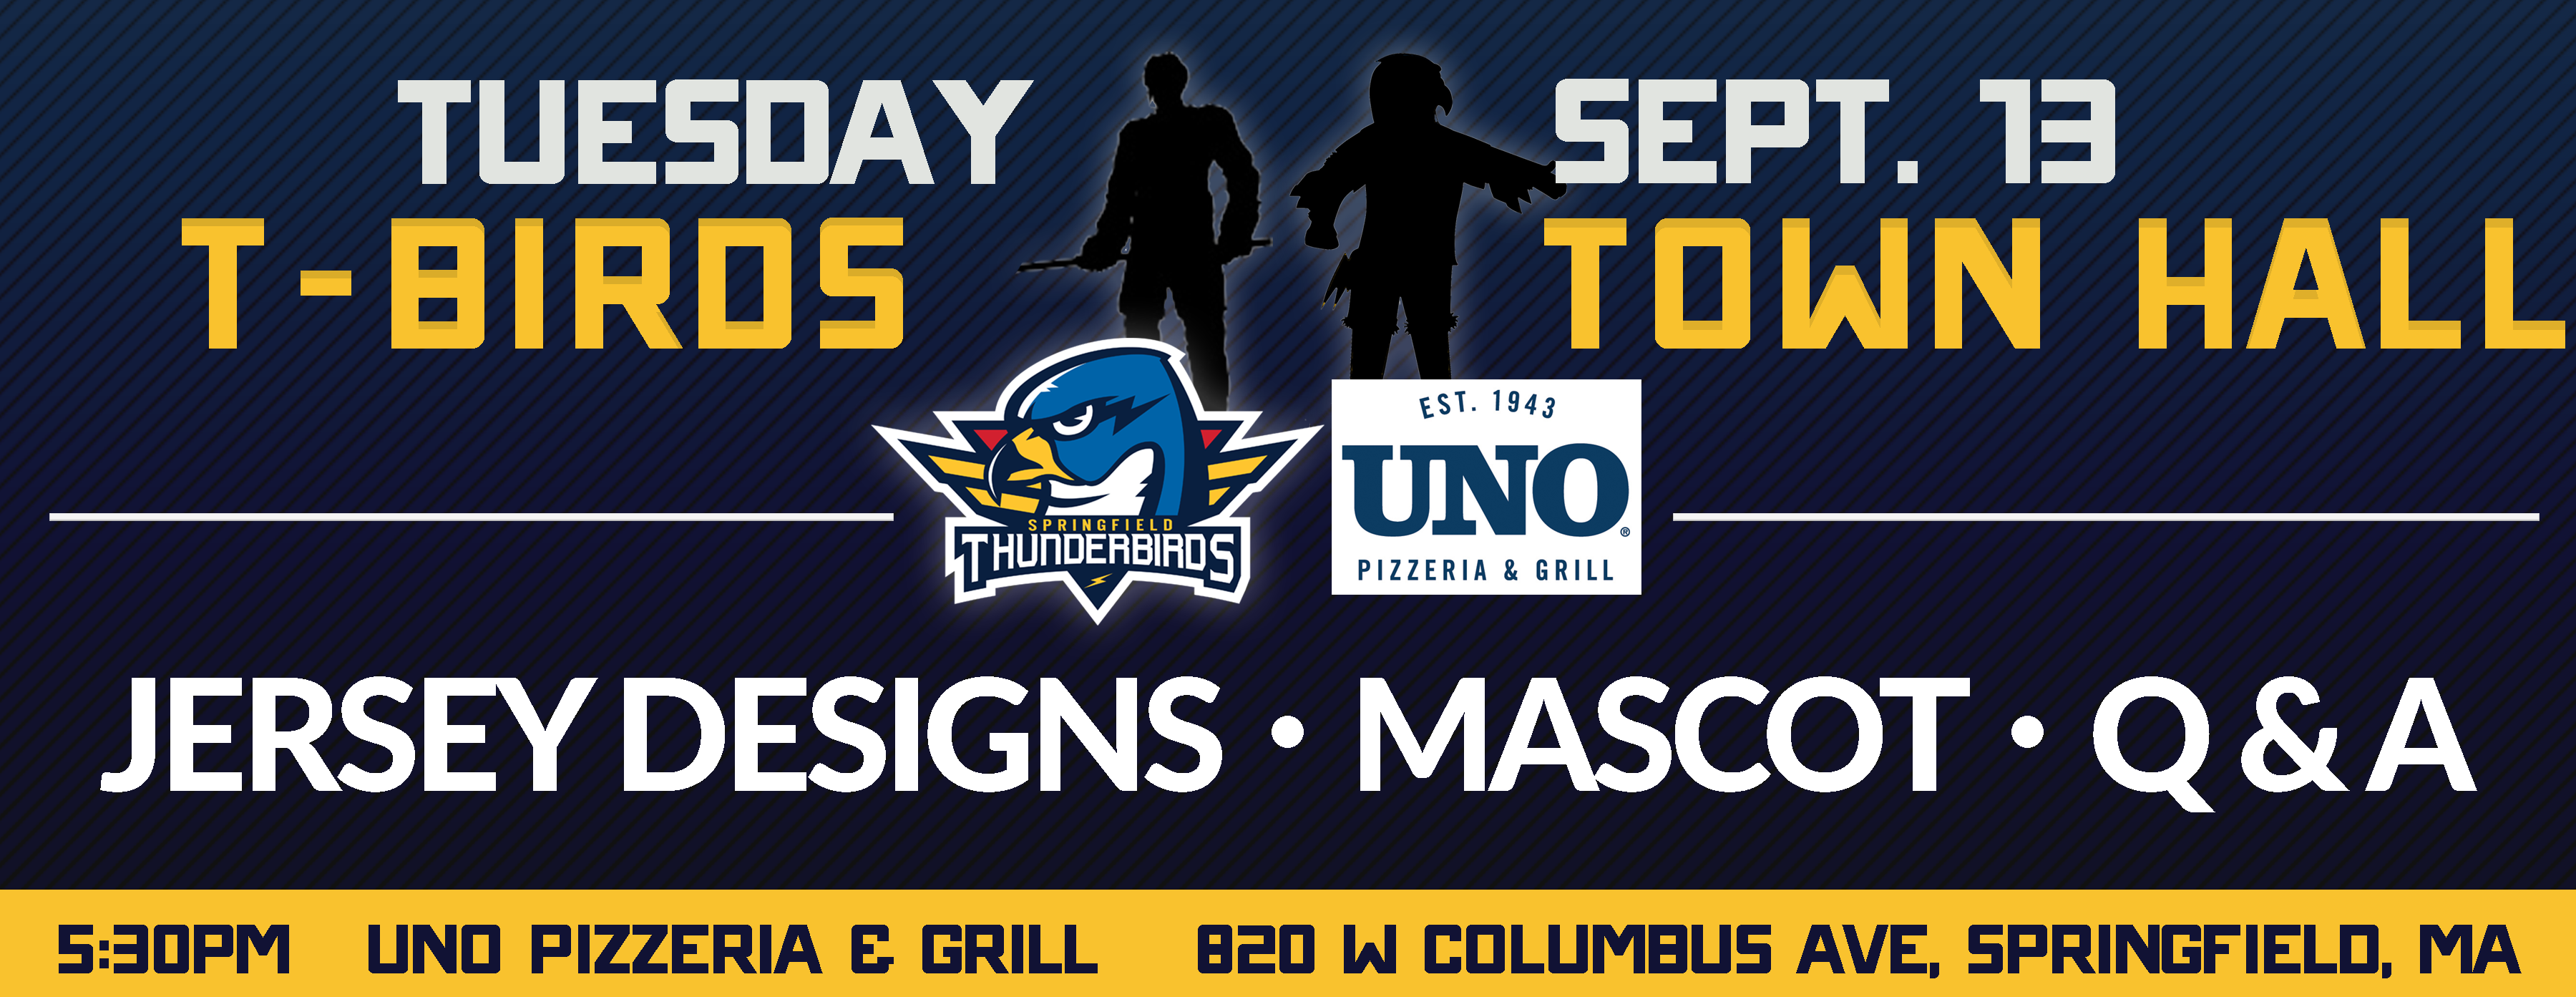 Thunderbirds to Unveil Jersey Designs & Mascot Tuesday